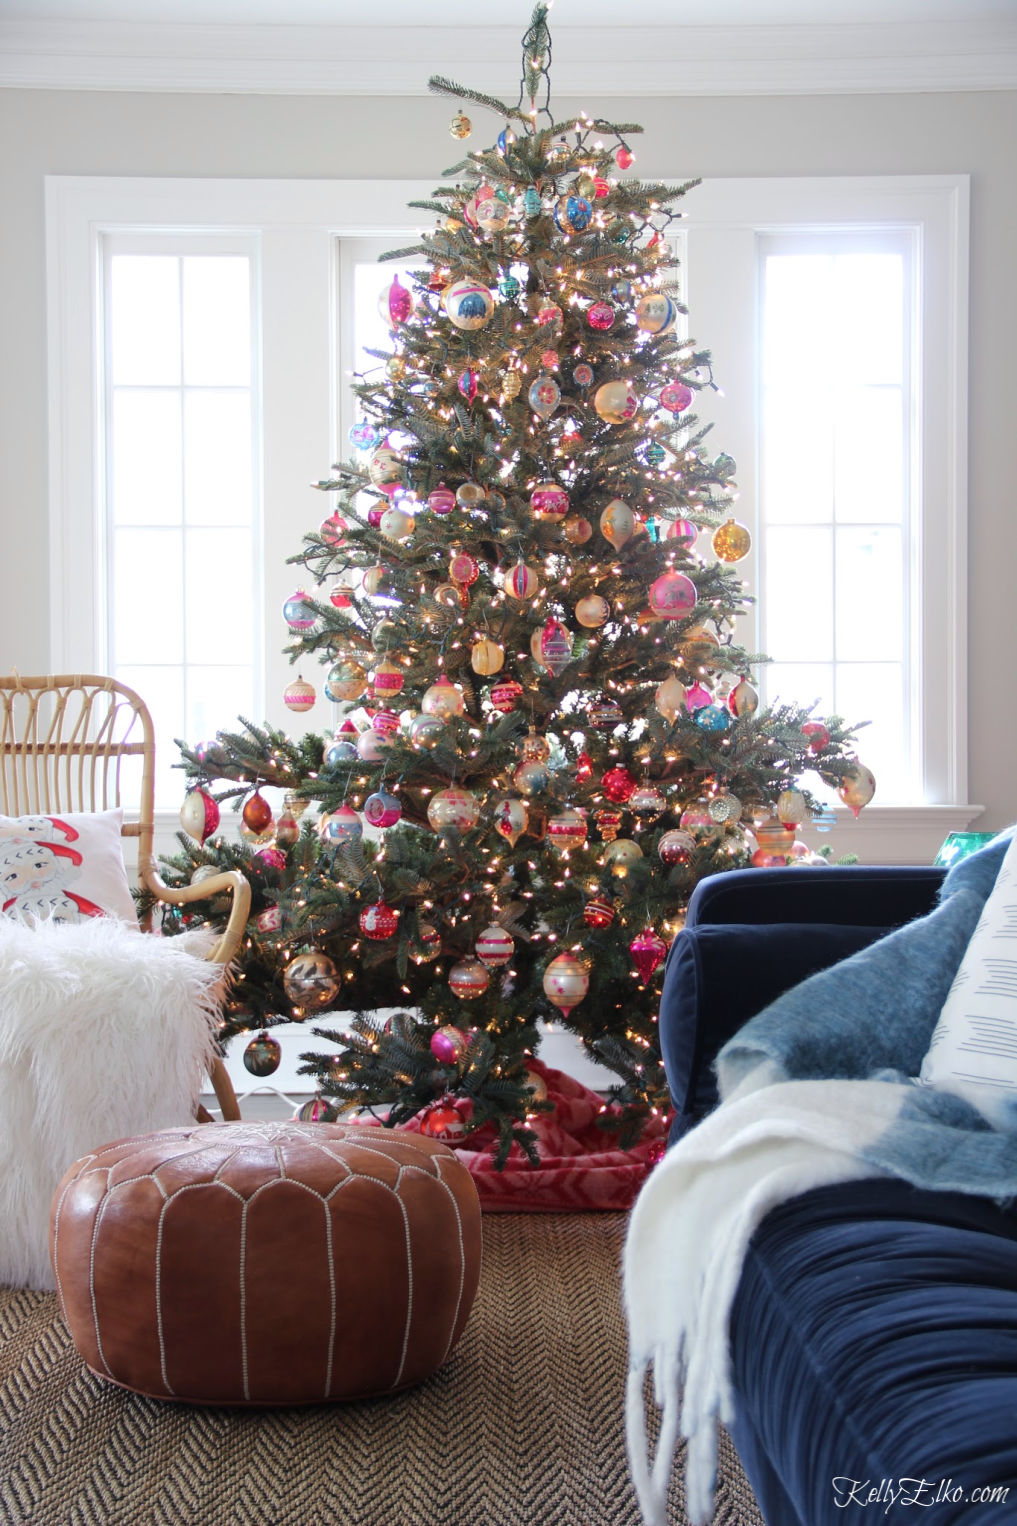 Wow! This Christmas tree is covered in vintage Shiny Brite ornaments kellyelko.com #christmas #vintagechristmas #christmastree #realistictree #realisticchristmastree #vintageornaments #christmasornaments #shinybrite #farmhousechristmas #christmasdecorations #retrochristmas #colorfulchristmas #christmastree